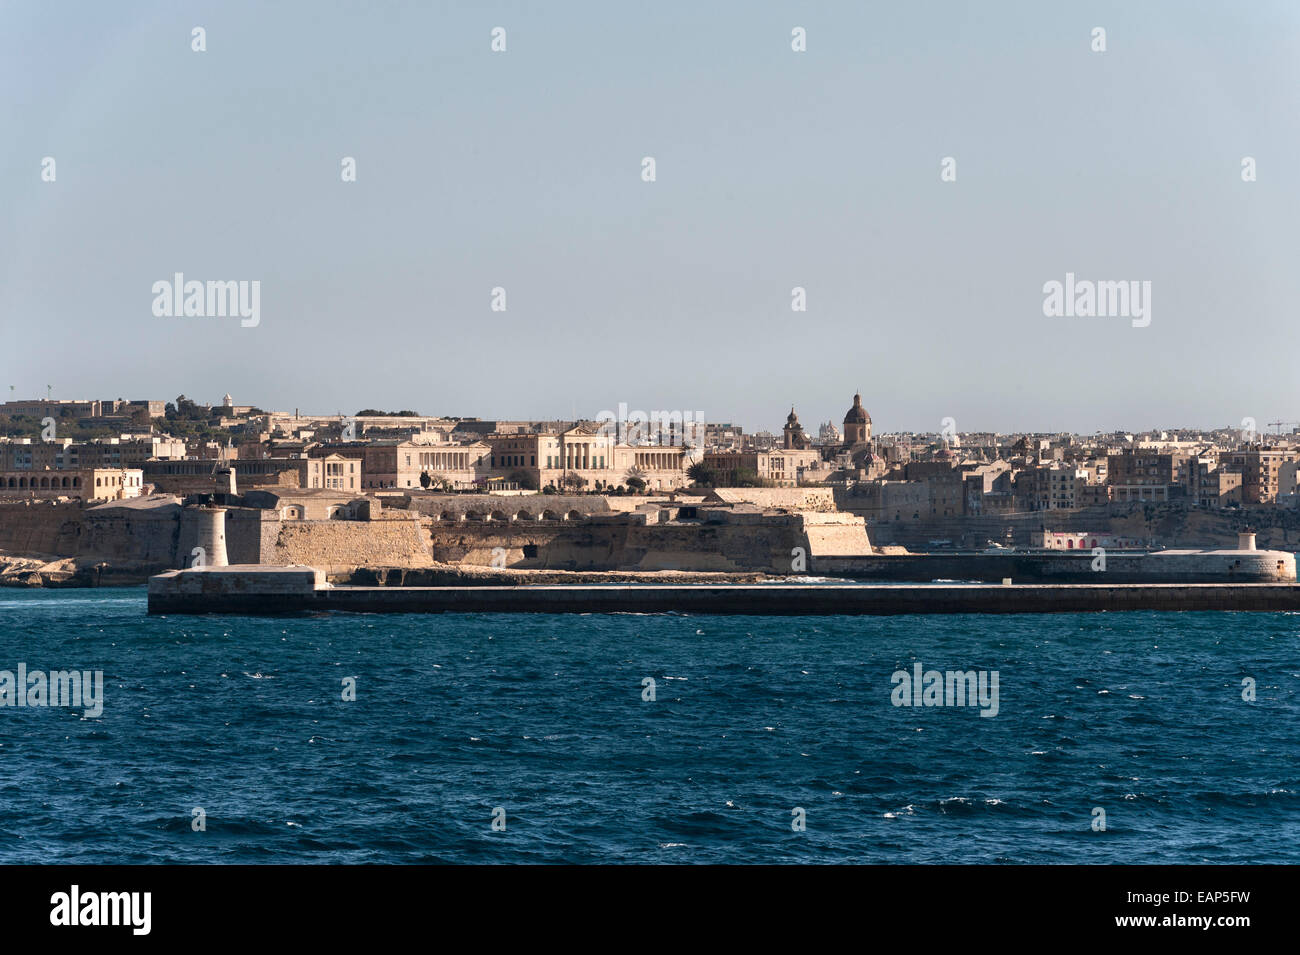 Valletta, Malta, from the sea - Saint Elmo lighthouse at the entrance to the Grand Harbour - Stock Image